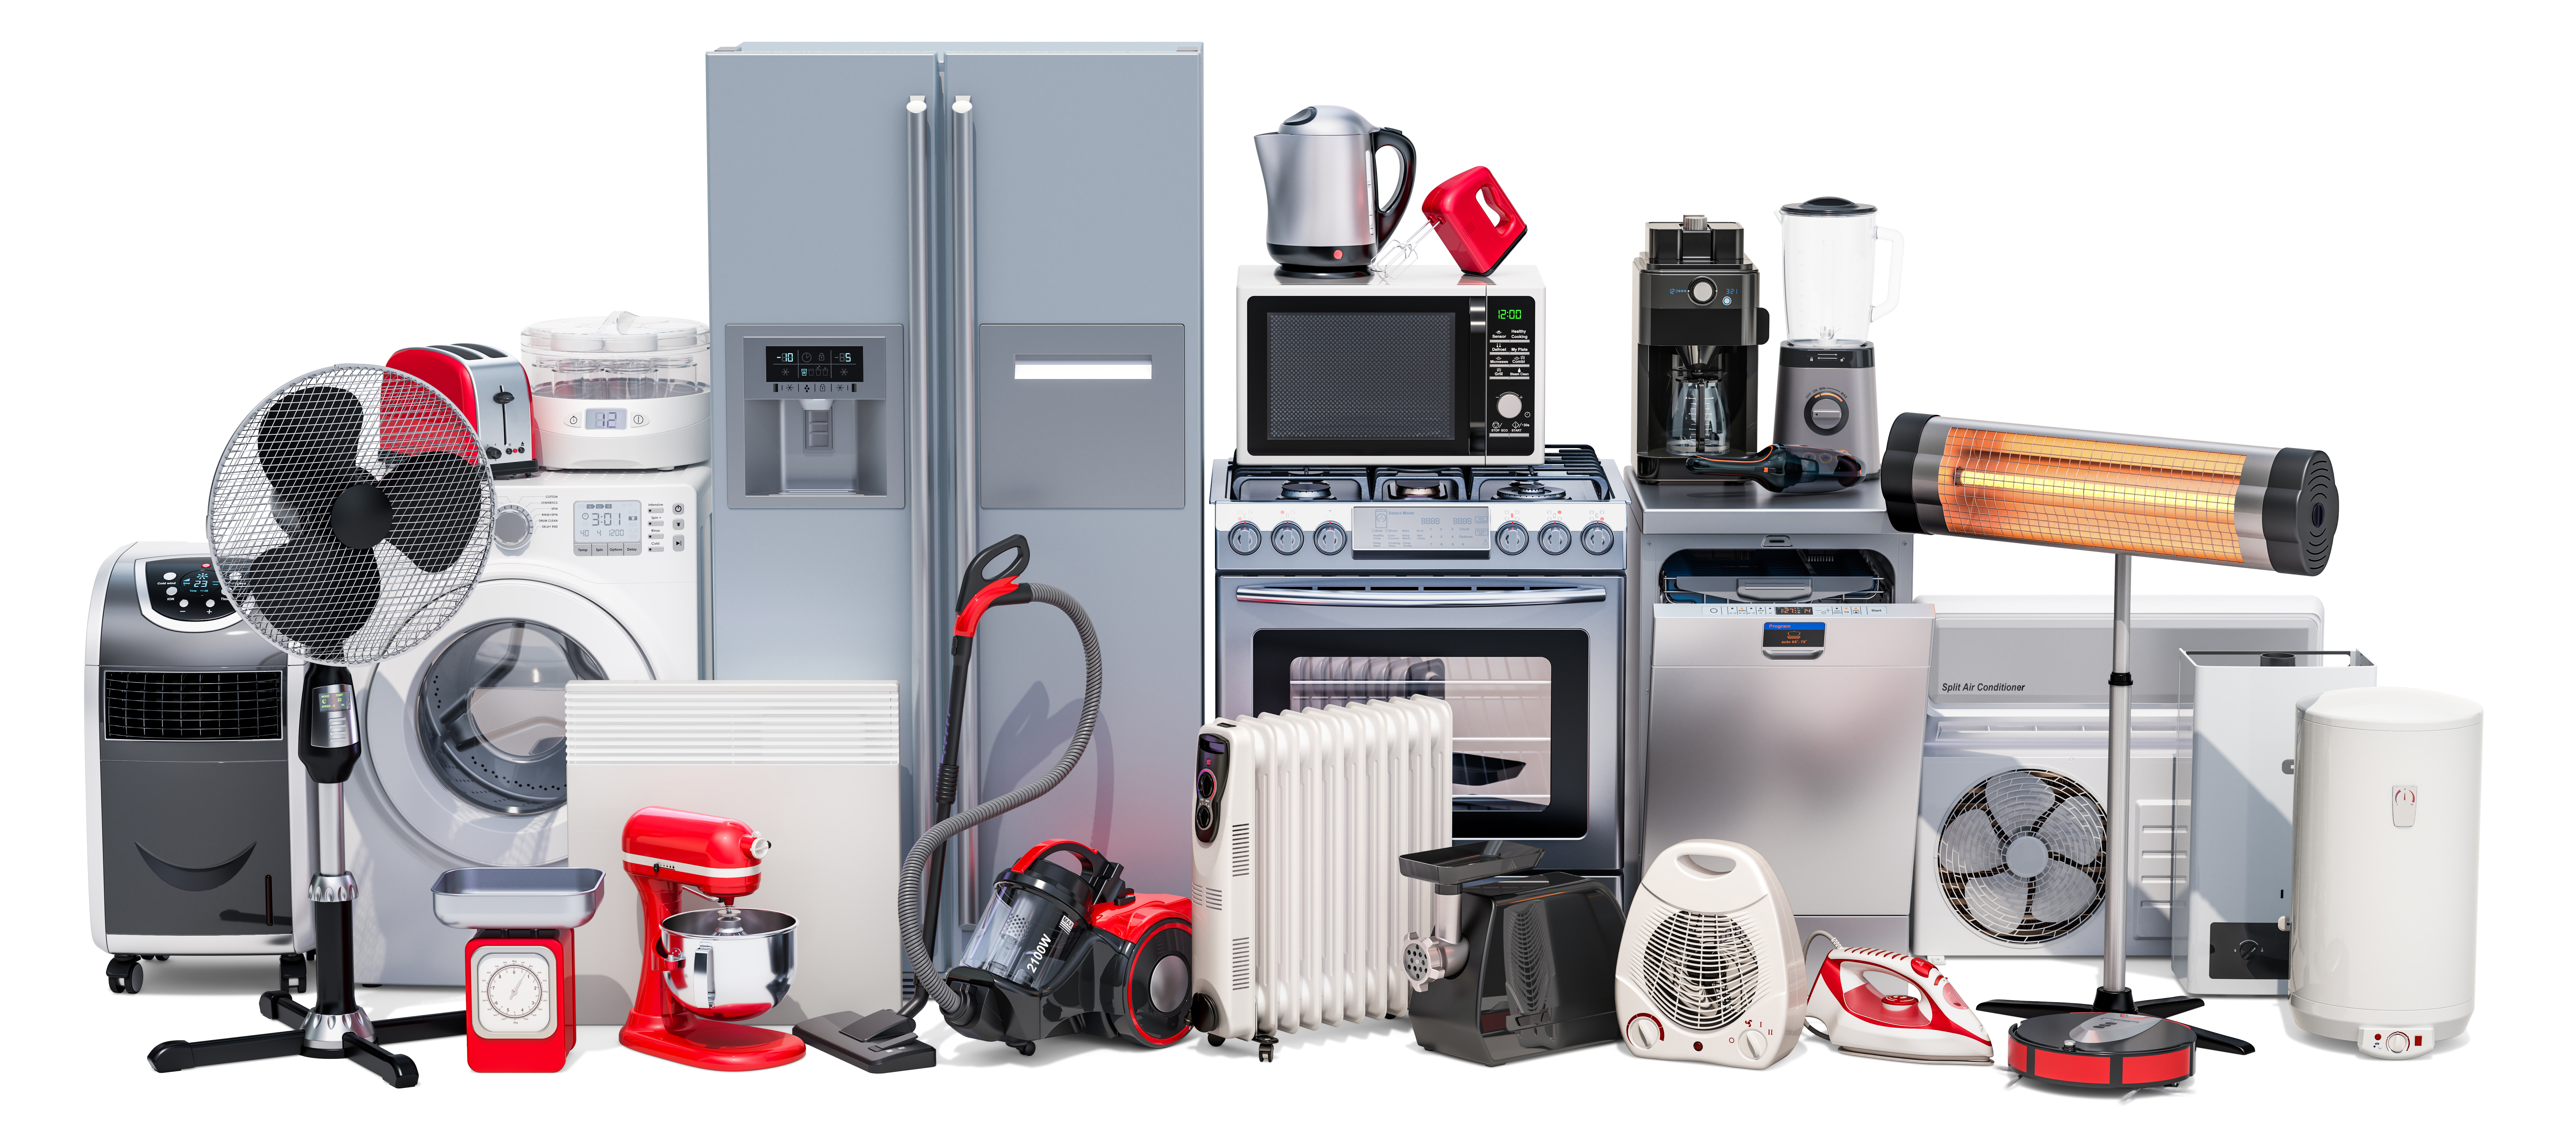 Appliance Parts reviews   E-Commerce at 775 Tipton Industrial Dr - Lawrenceville GA